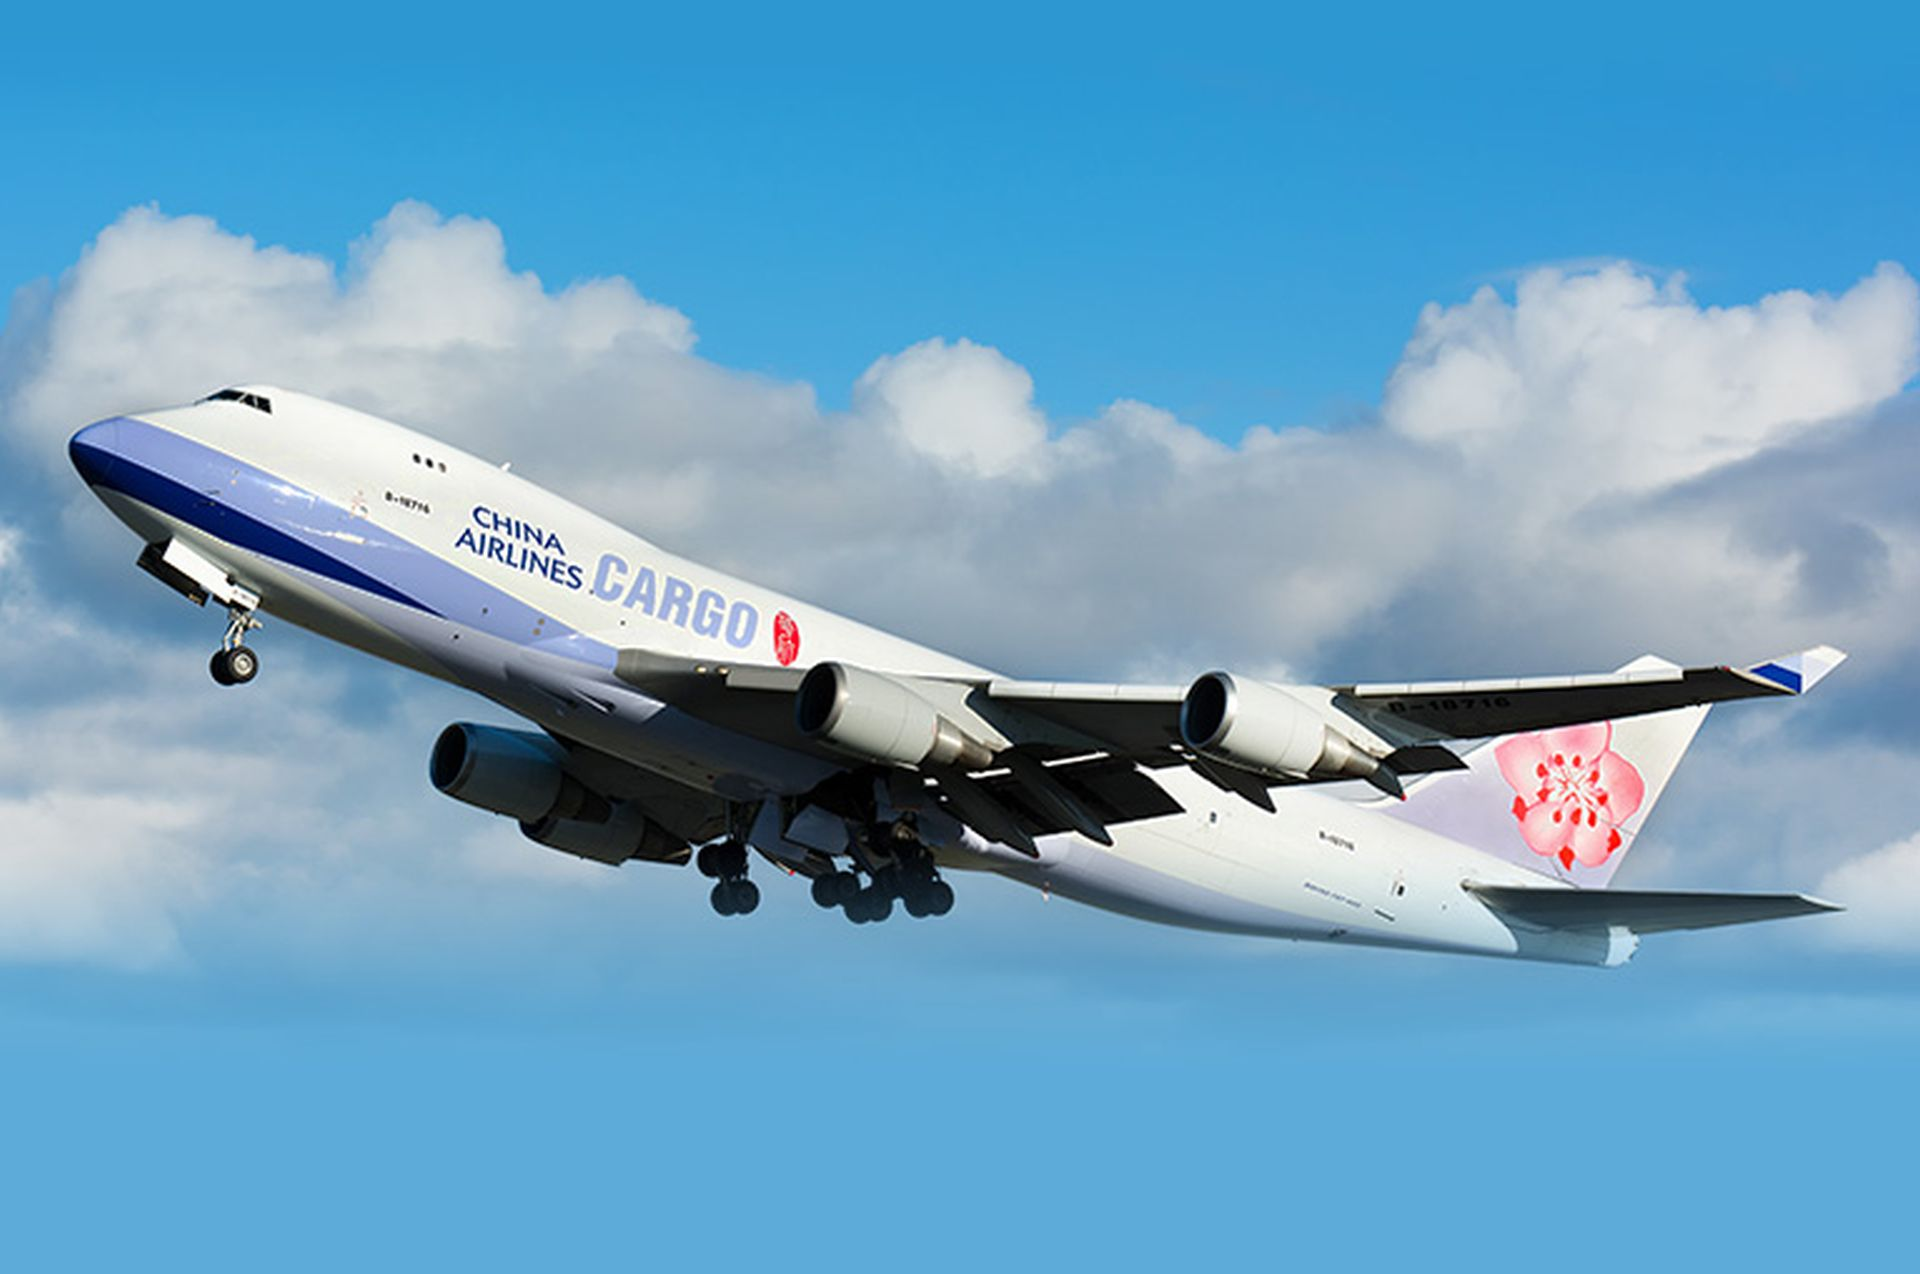 Boeing 747F. Foto: China Airlines Cargo